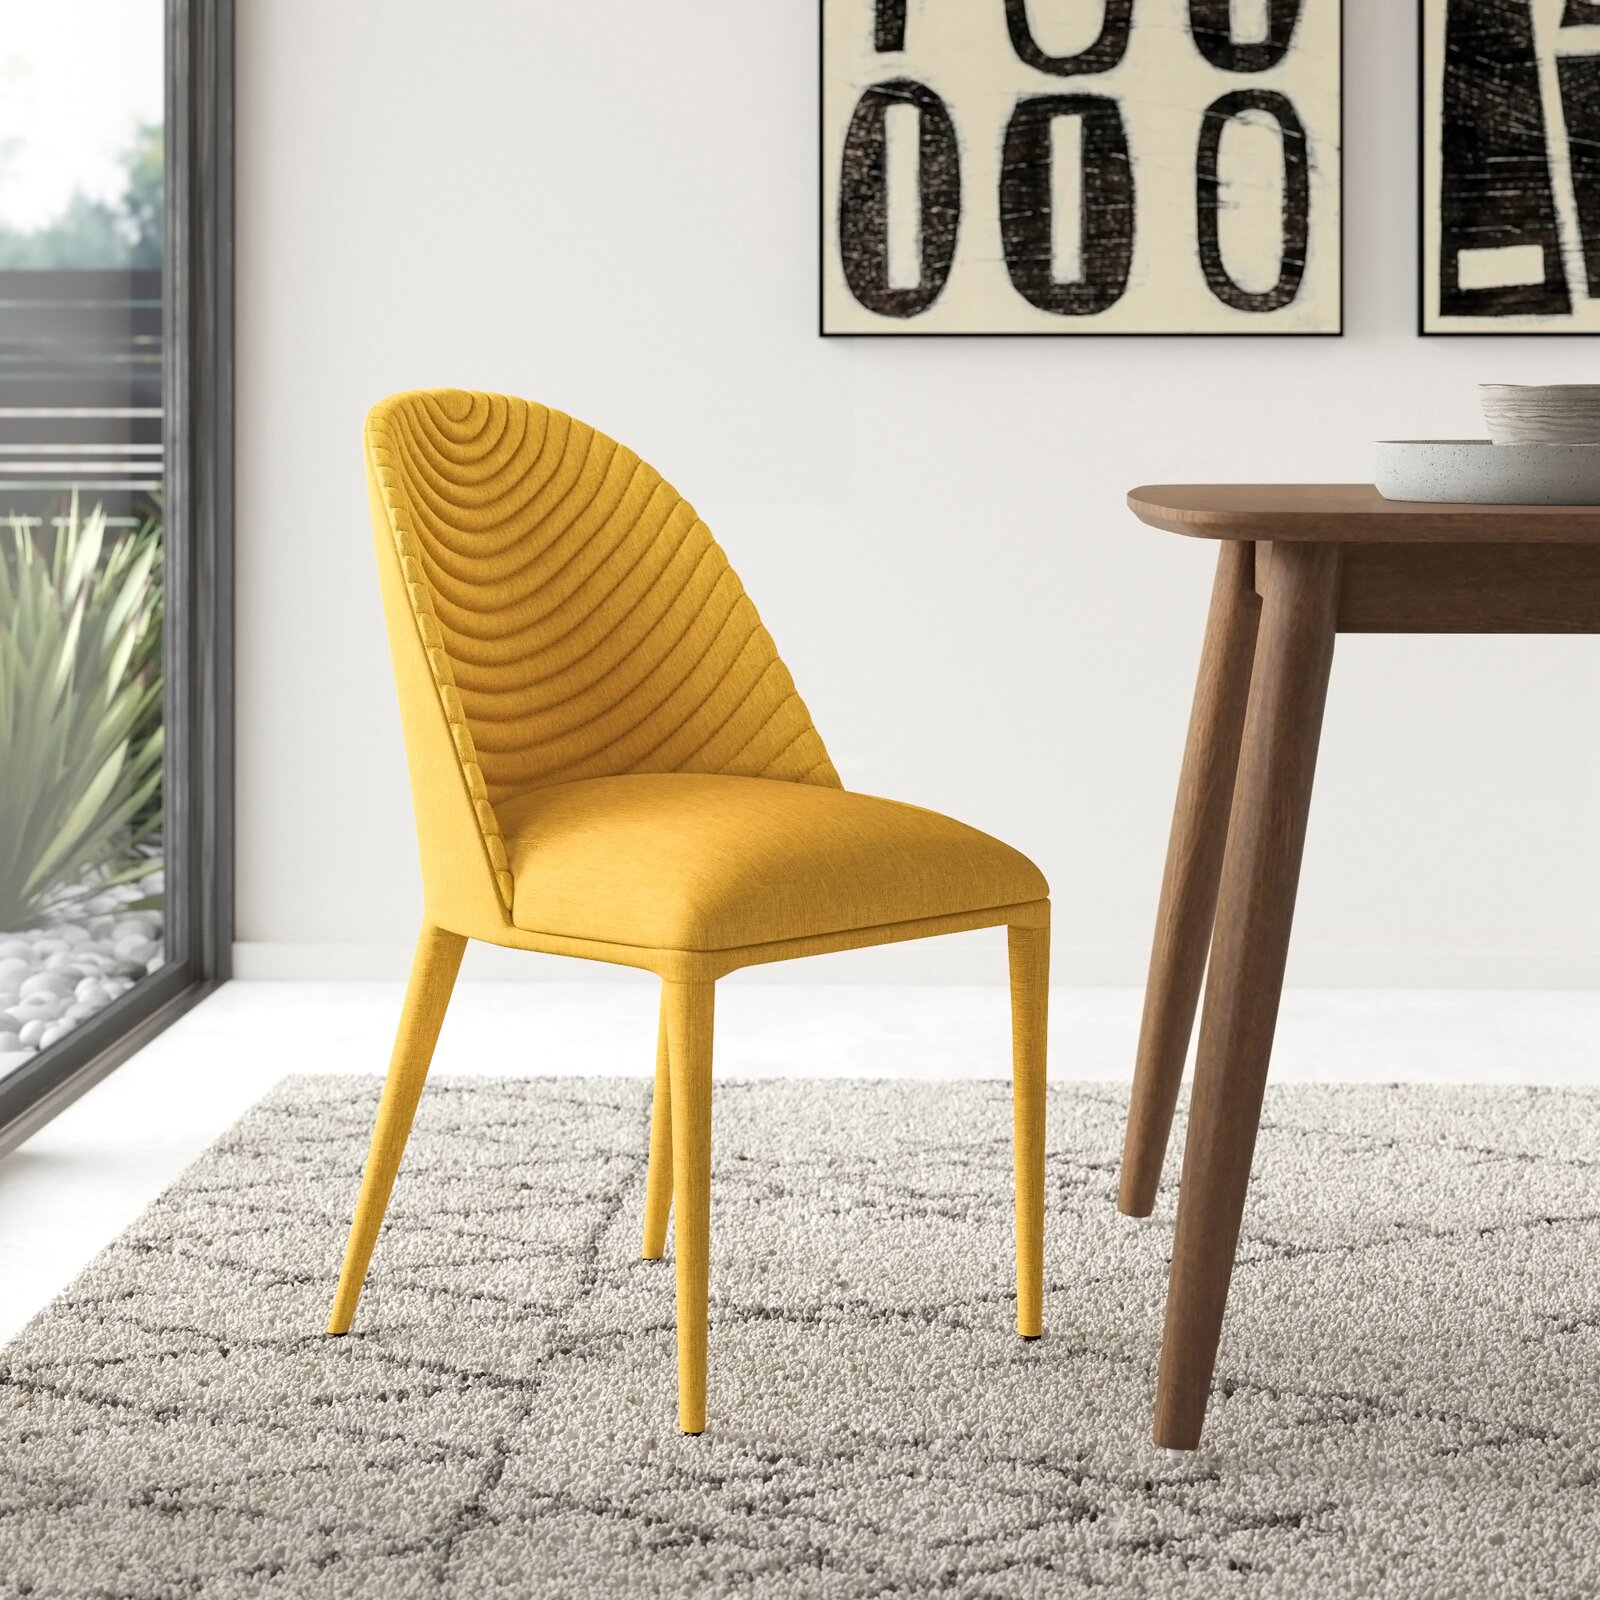 bright-yellow-upholstered-dining-chairs-unique-arched-tufting-fabric-covered-legs-arched-backrest-creative-dining-room-furniture-ideas